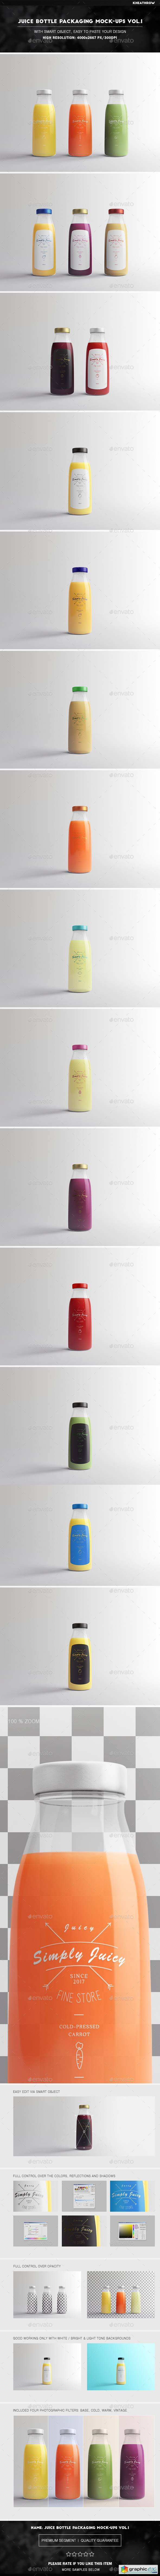 Juice Bottle Packaging Mock-Ups Vol.1